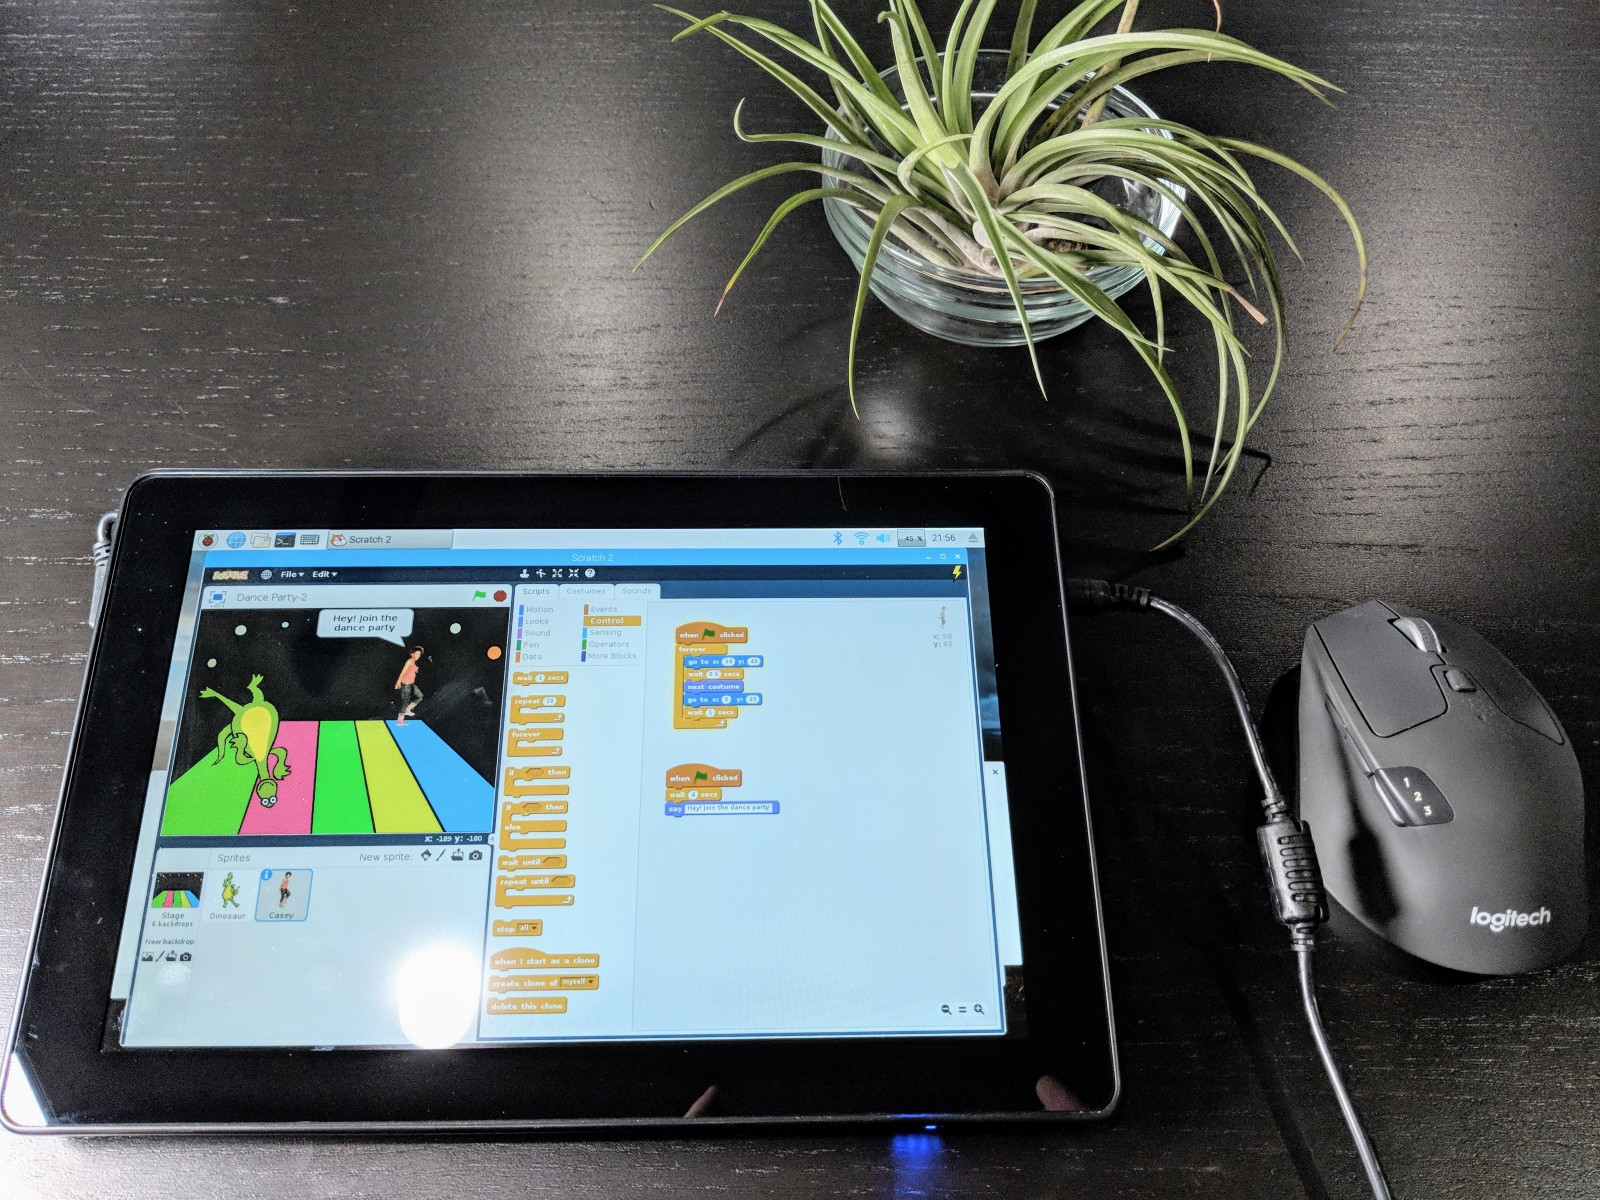 RasPad Review: Turn your Raspberry Pi Into a Tablet - By